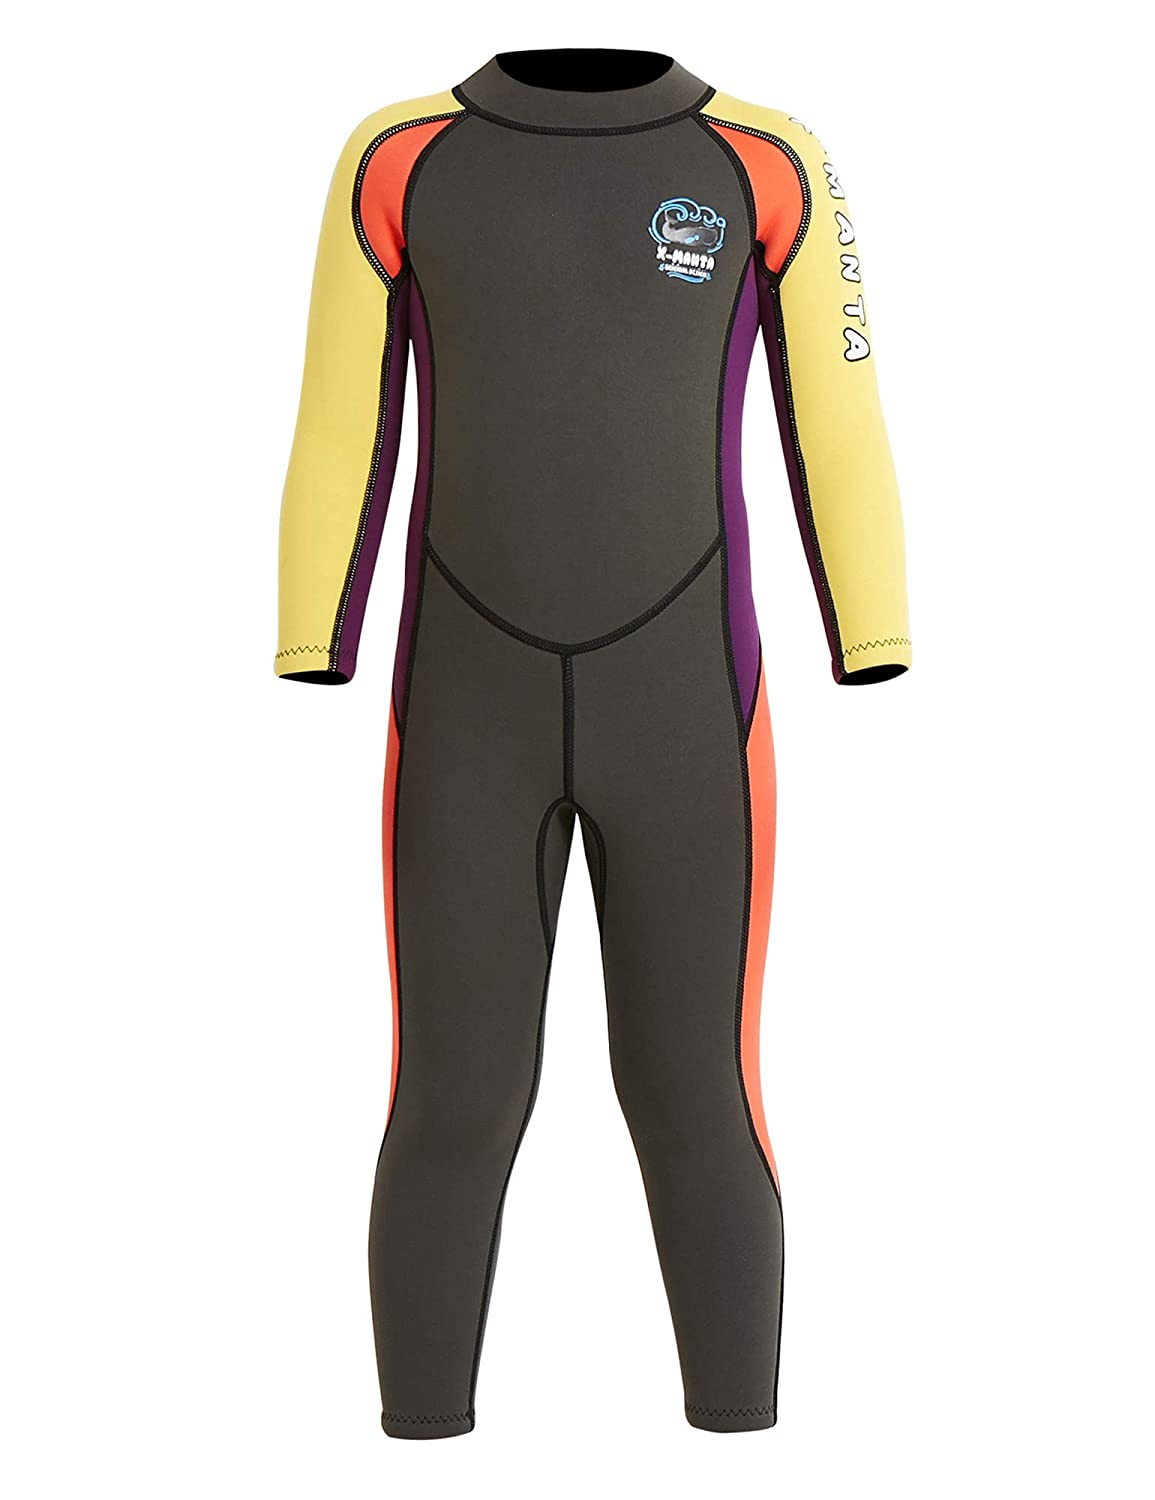 DIVE & SAIL Kids Wetsuit 2.5mm Neoprene Keep Warm for Diving Swimming Canoeing UV Protection by DIVE & SAIL